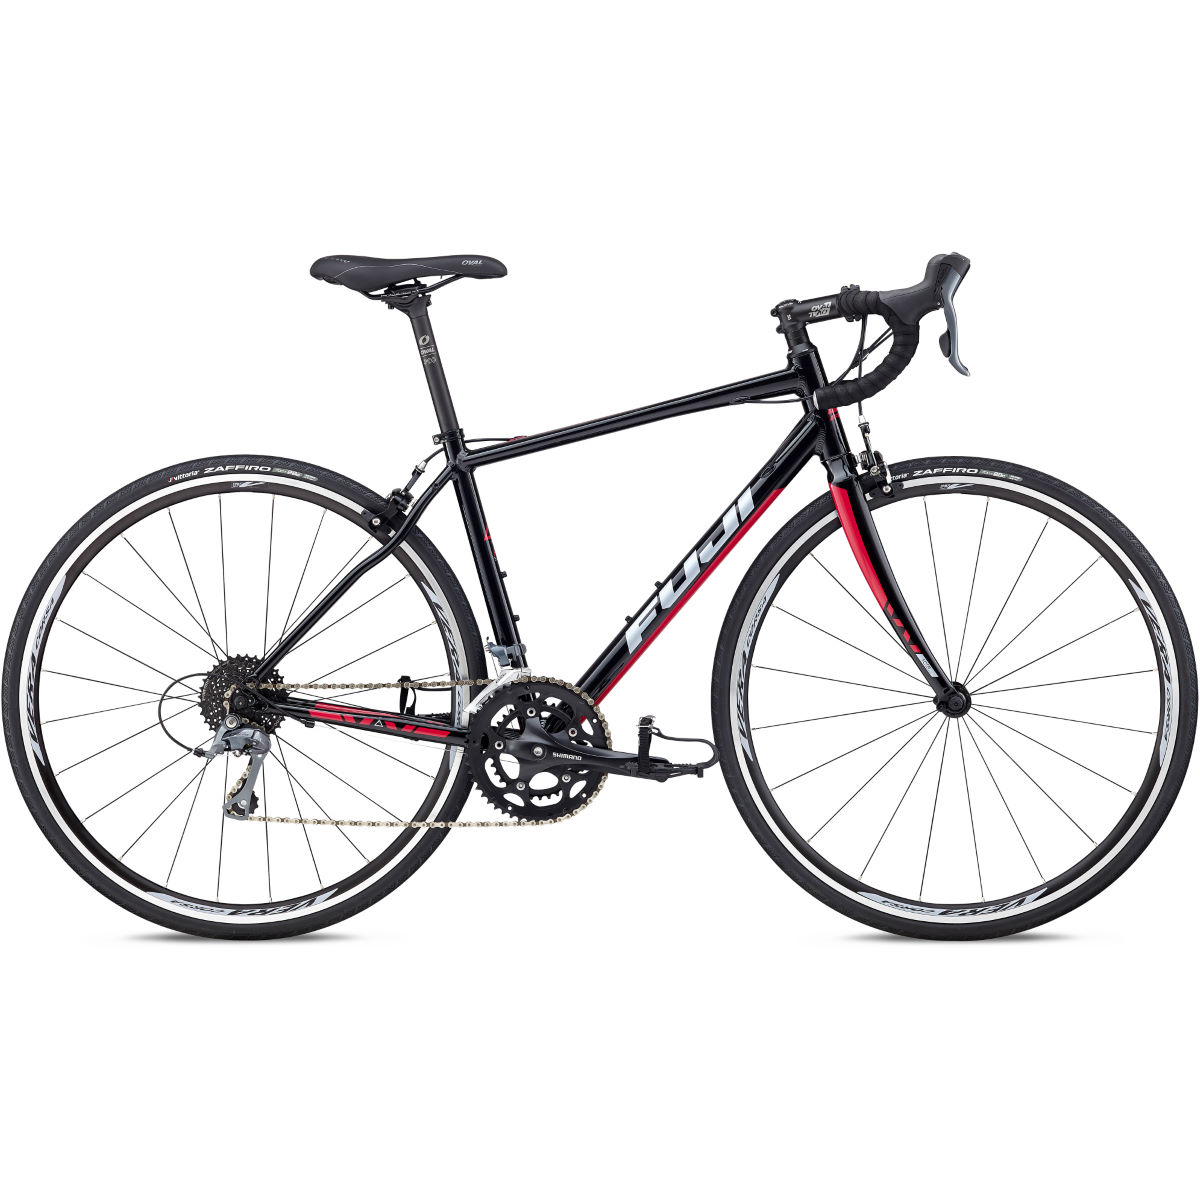 Vélo de route Fuji Finest 2.3 - 50cm Stock Bike Black/Raspberry